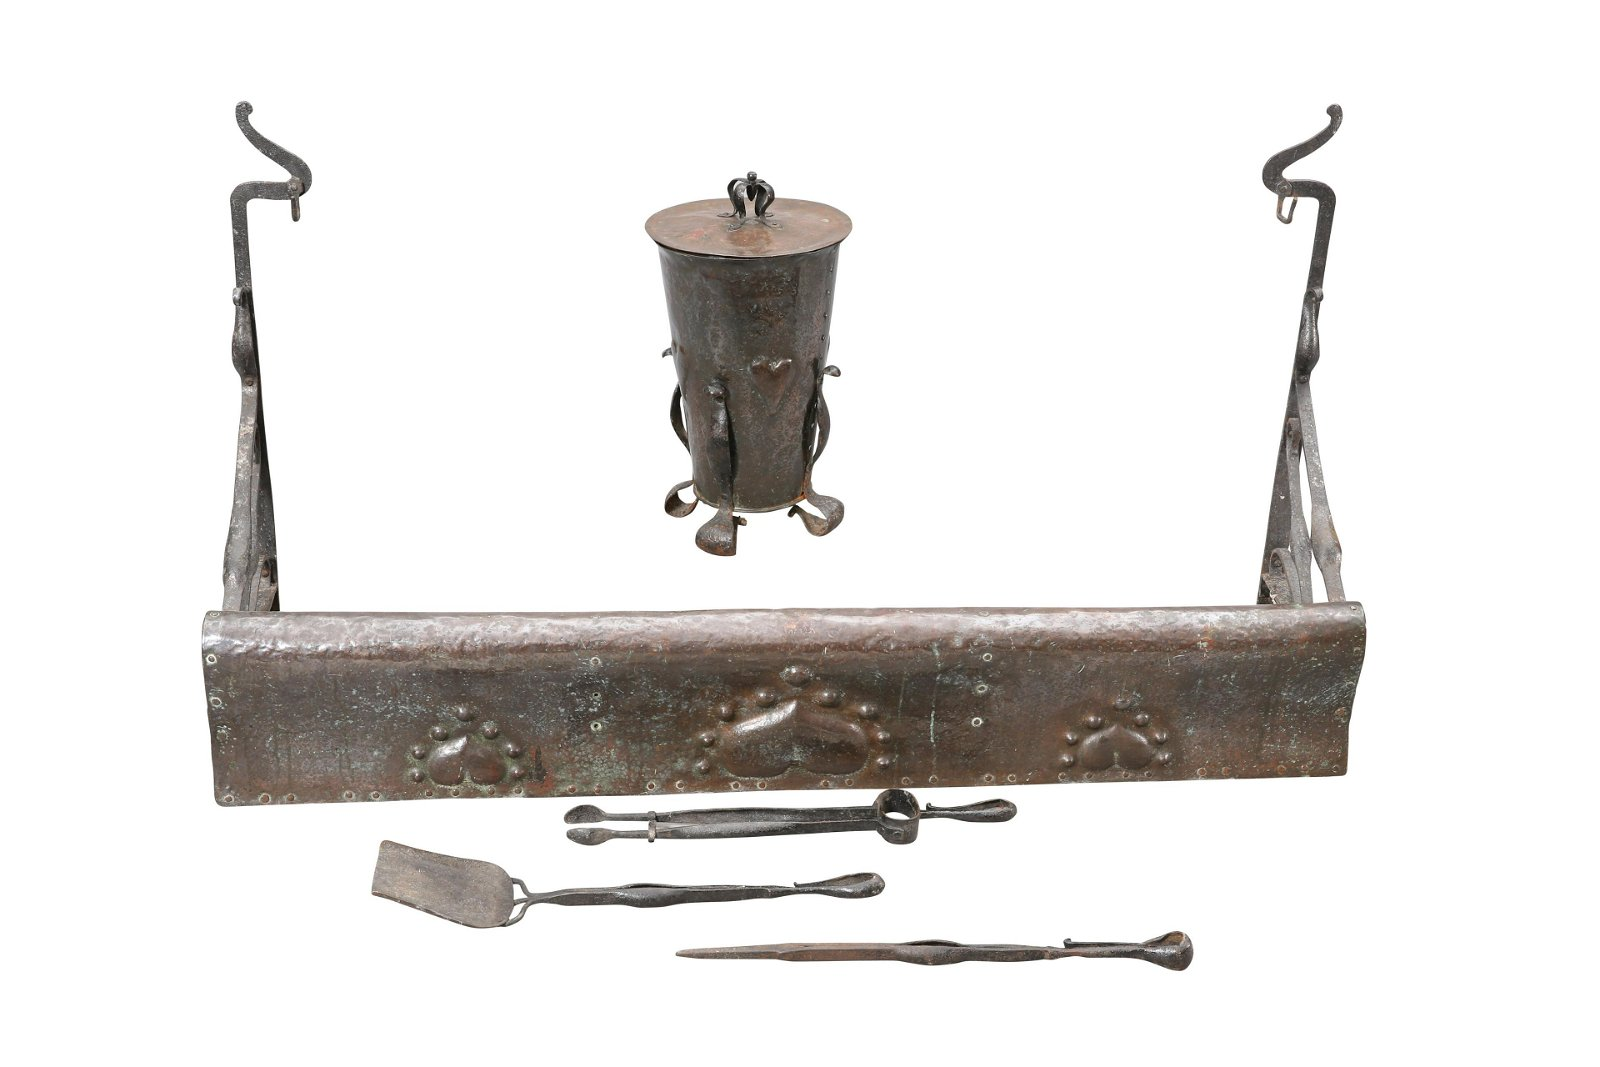 AN ARTS AND CRAFTS COPPER AND WROUGHT IRON FIRE SET, IN